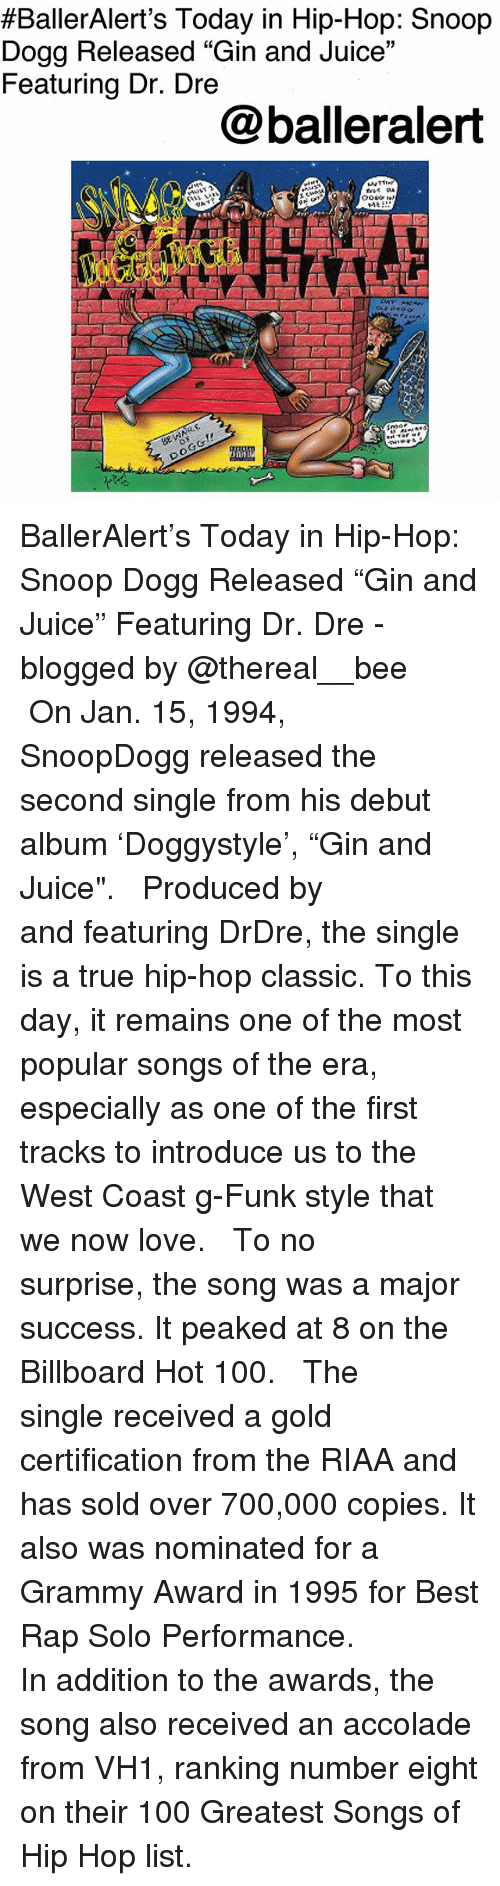 """Anaconda, Billboard, and Dr. Dre:  #BallerAlert's Today in Hip-Hop: Snoop  Dogg Released """"Gin and Juice""""  Featuring Dr. Dre  05  @balleralert BallerAlert's Today in Hip-Hop: Snoop Dogg Released """"Gin and Juice"""" Featuring Dr. Dre -blogged by @thereal__bee ⠀⠀⠀⠀⠀⠀⠀ ⠀⠀⠀⠀ On Jan. 15, 1994, SnoopDogg released the second single from his debut album 'Doggystyle', """"Gin and Juice"""". ⠀⠀⠀⠀⠀⠀⠀ ⠀⠀⠀⠀ Produced by and featuring DrDre, the single is a true hip-hop classic. To this day, it remains one of the most popular songs of the era, especially as one of the first tracks to introduce us to the West Coast g-Funk style that we now love. ⠀⠀⠀⠀⠀⠀⠀ ⠀⠀⠀⠀ To no surprise, the song was a major success. It peaked at 8 on the Billboard Hot 100. ⠀⠀⠀⠀⠀⠀⠀ ⠀⠀⠀⠀ The single received a gold certification from the RIAA and has sold over 700,000 copies. It also was nominated for a Grammy Award in 1995 for Best Rap Solo Performance. ⠀⠀⠀⠀⠀⠀⠀ ⠀⠀⠀⠀ In addition to the awards, the song also received an accolade from VH1, ranking number eight on their 100 Greatest Songs of Hip Hop list."""